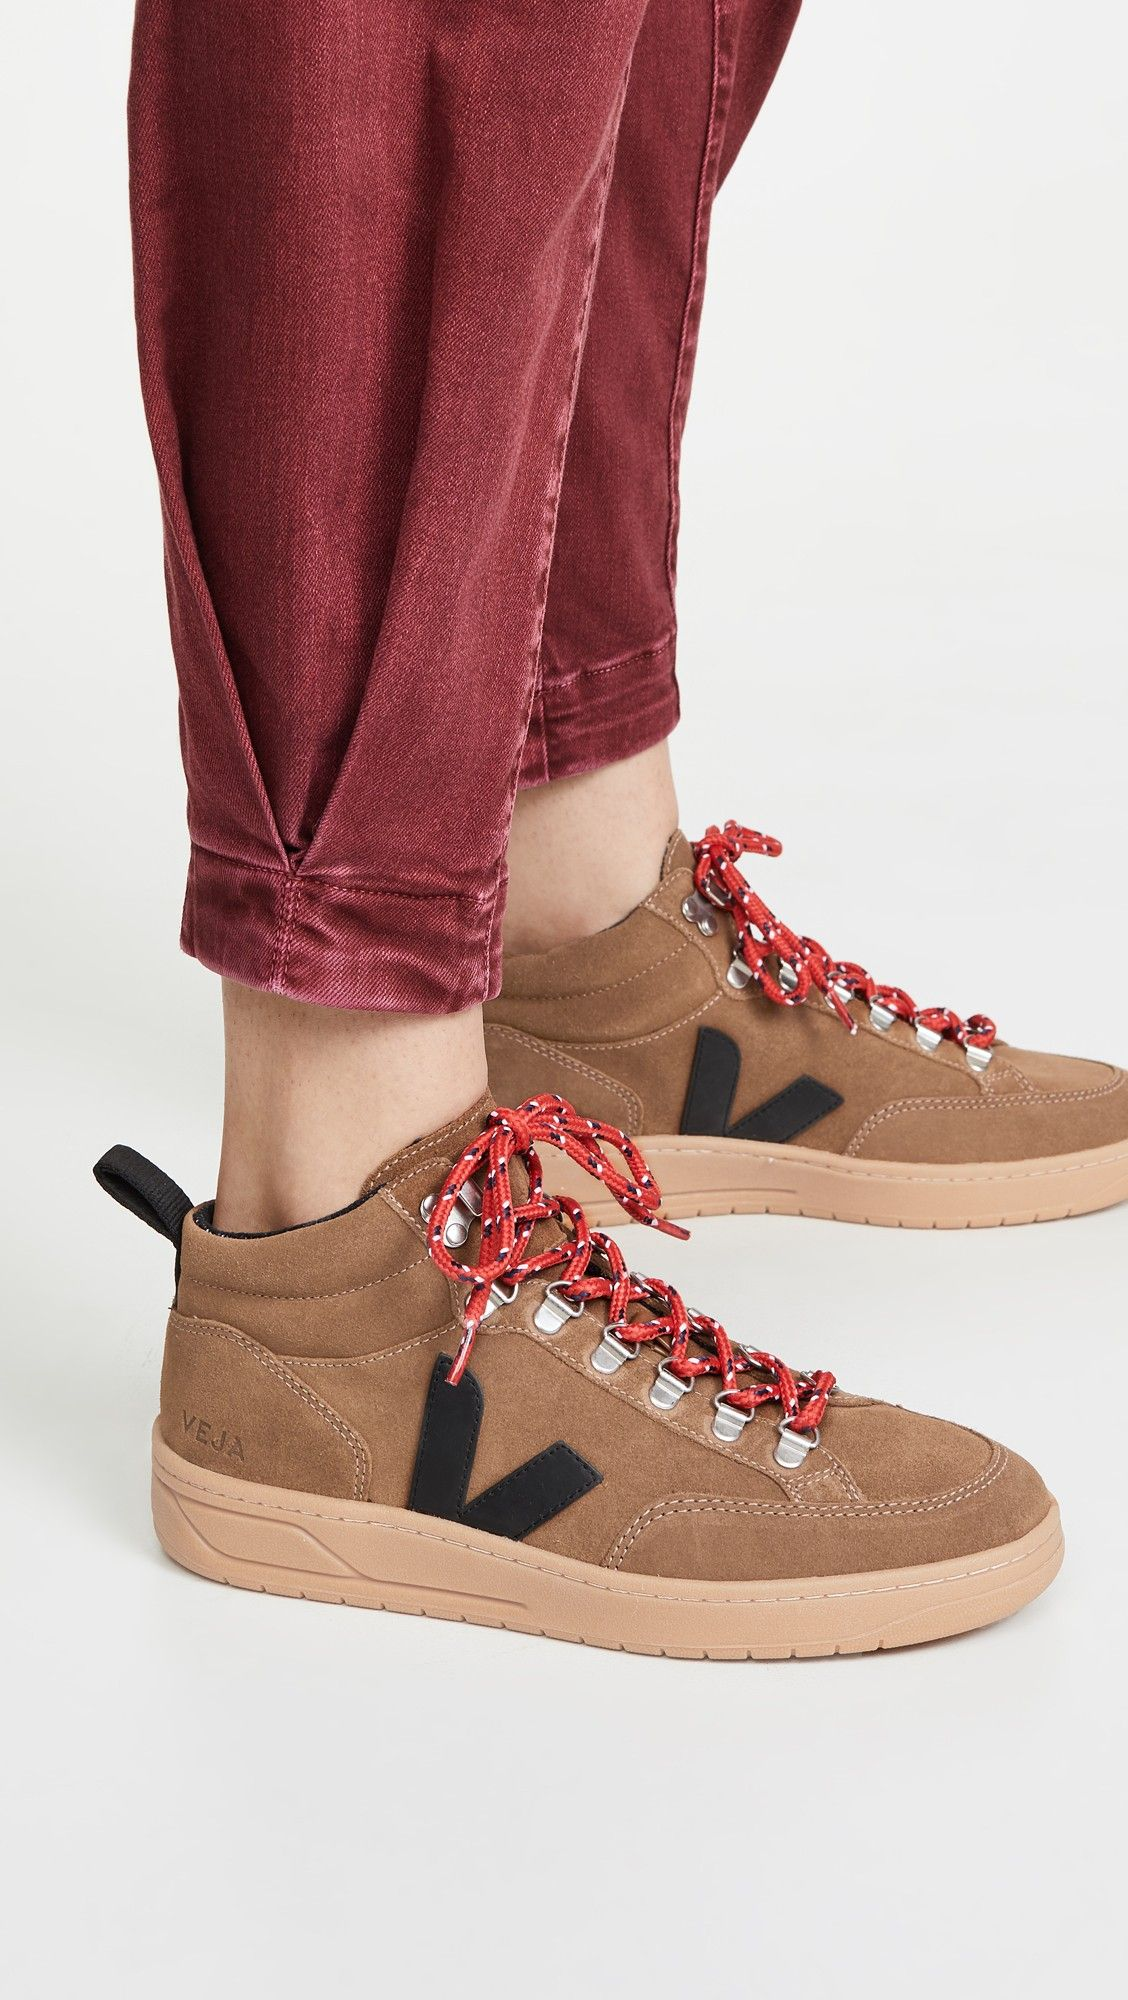 Veja Roraima Sneakers in 2020 Sneakers, Hiking fashion